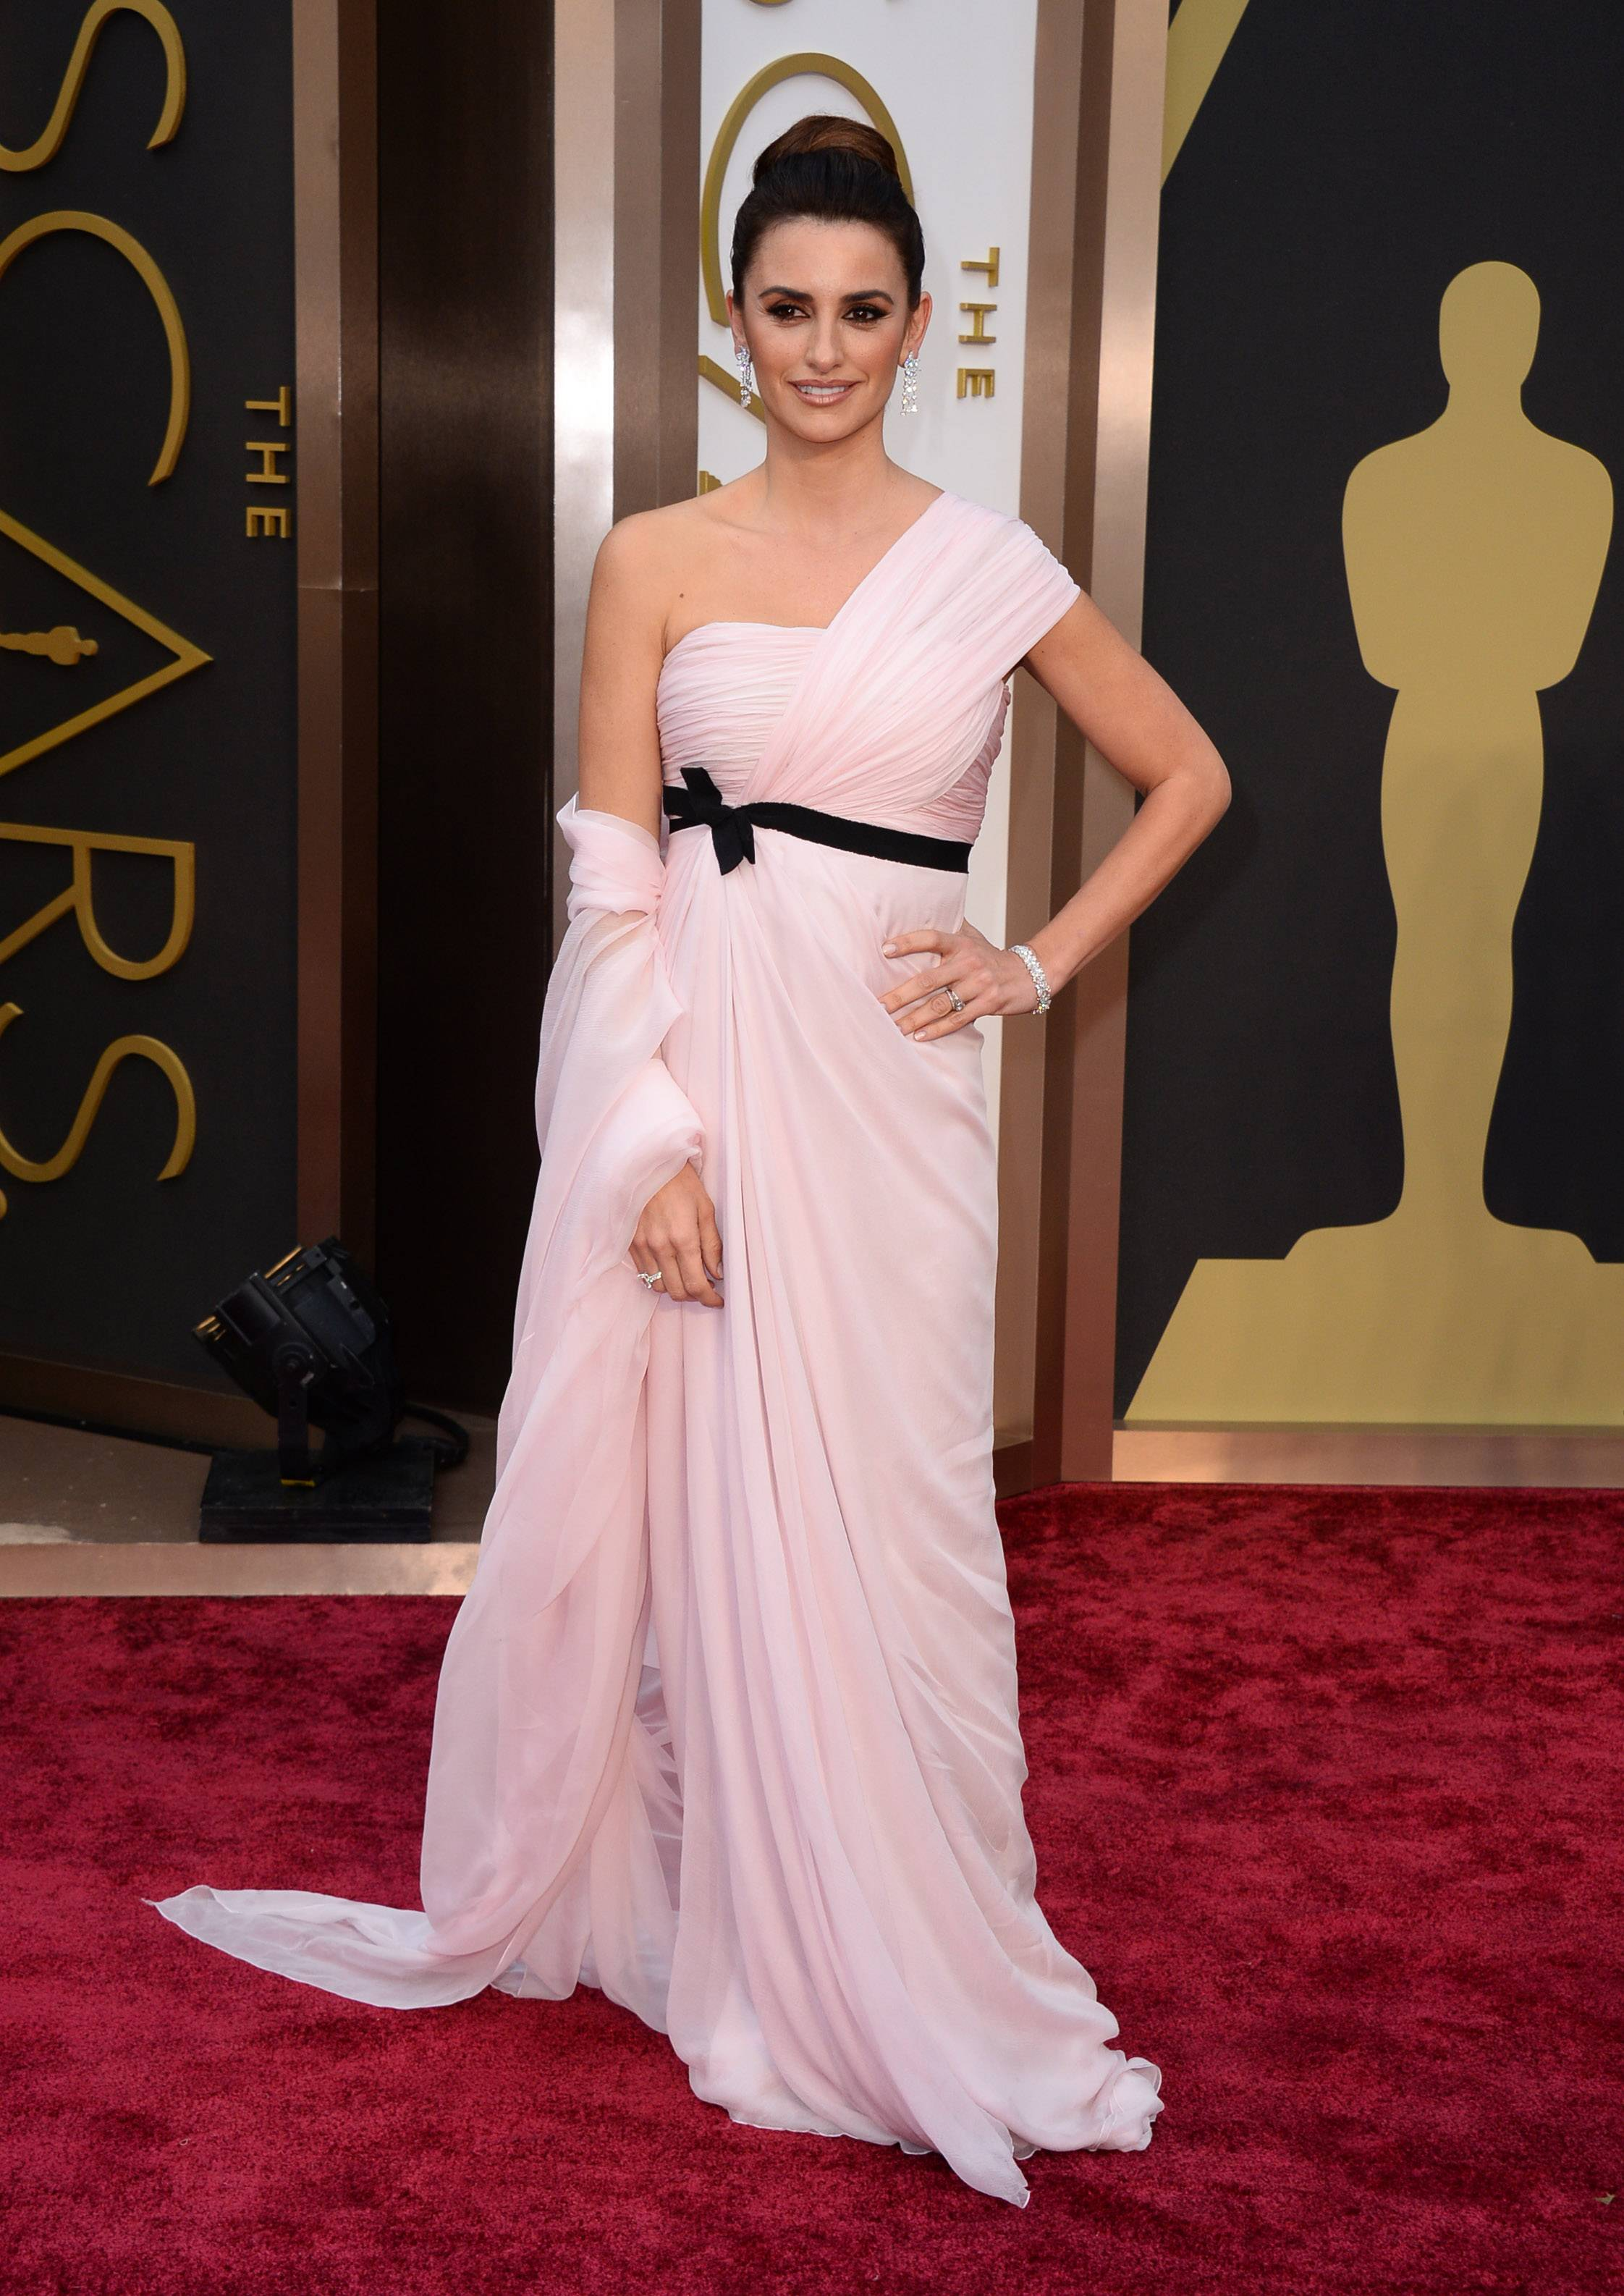 Penelope Cruz arrives at the Oscars on Sunday.